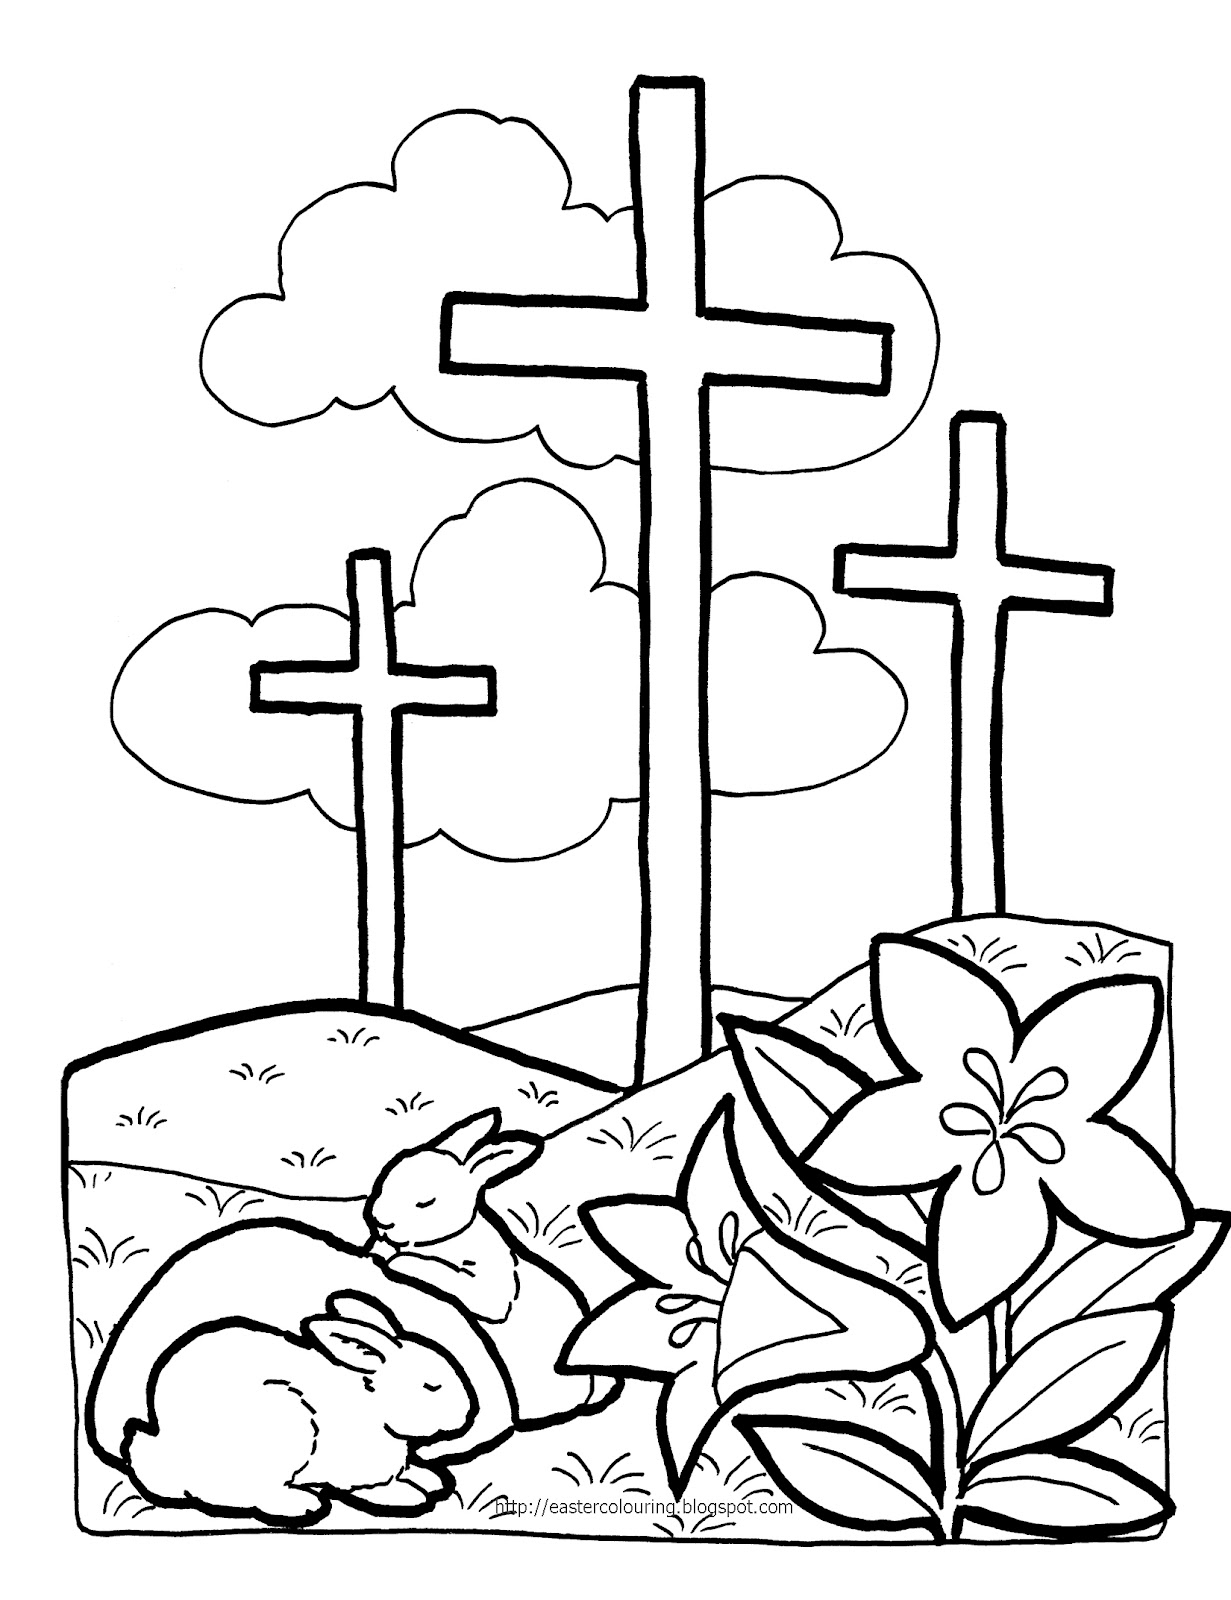 free religious christian easter coloring pages | EASTER COLOURING: RELIGIOUS EASTER COLORING PAGES